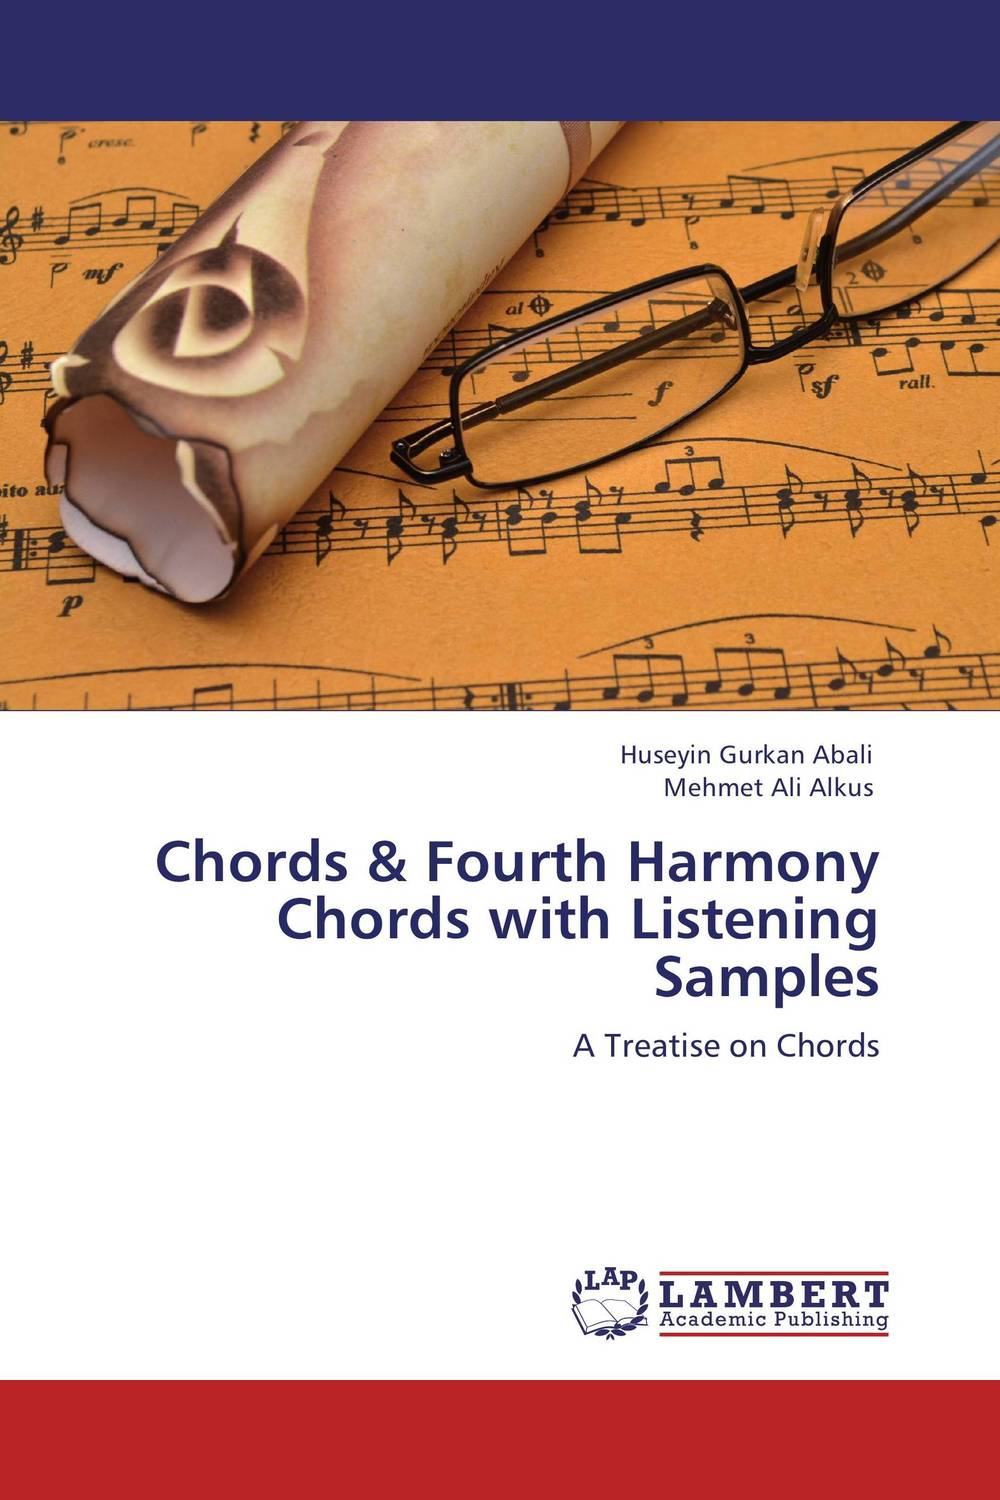 Chords & Fourth Harmony Chords with Listening Samples three chords for beauty s sake – the life of artie shaw